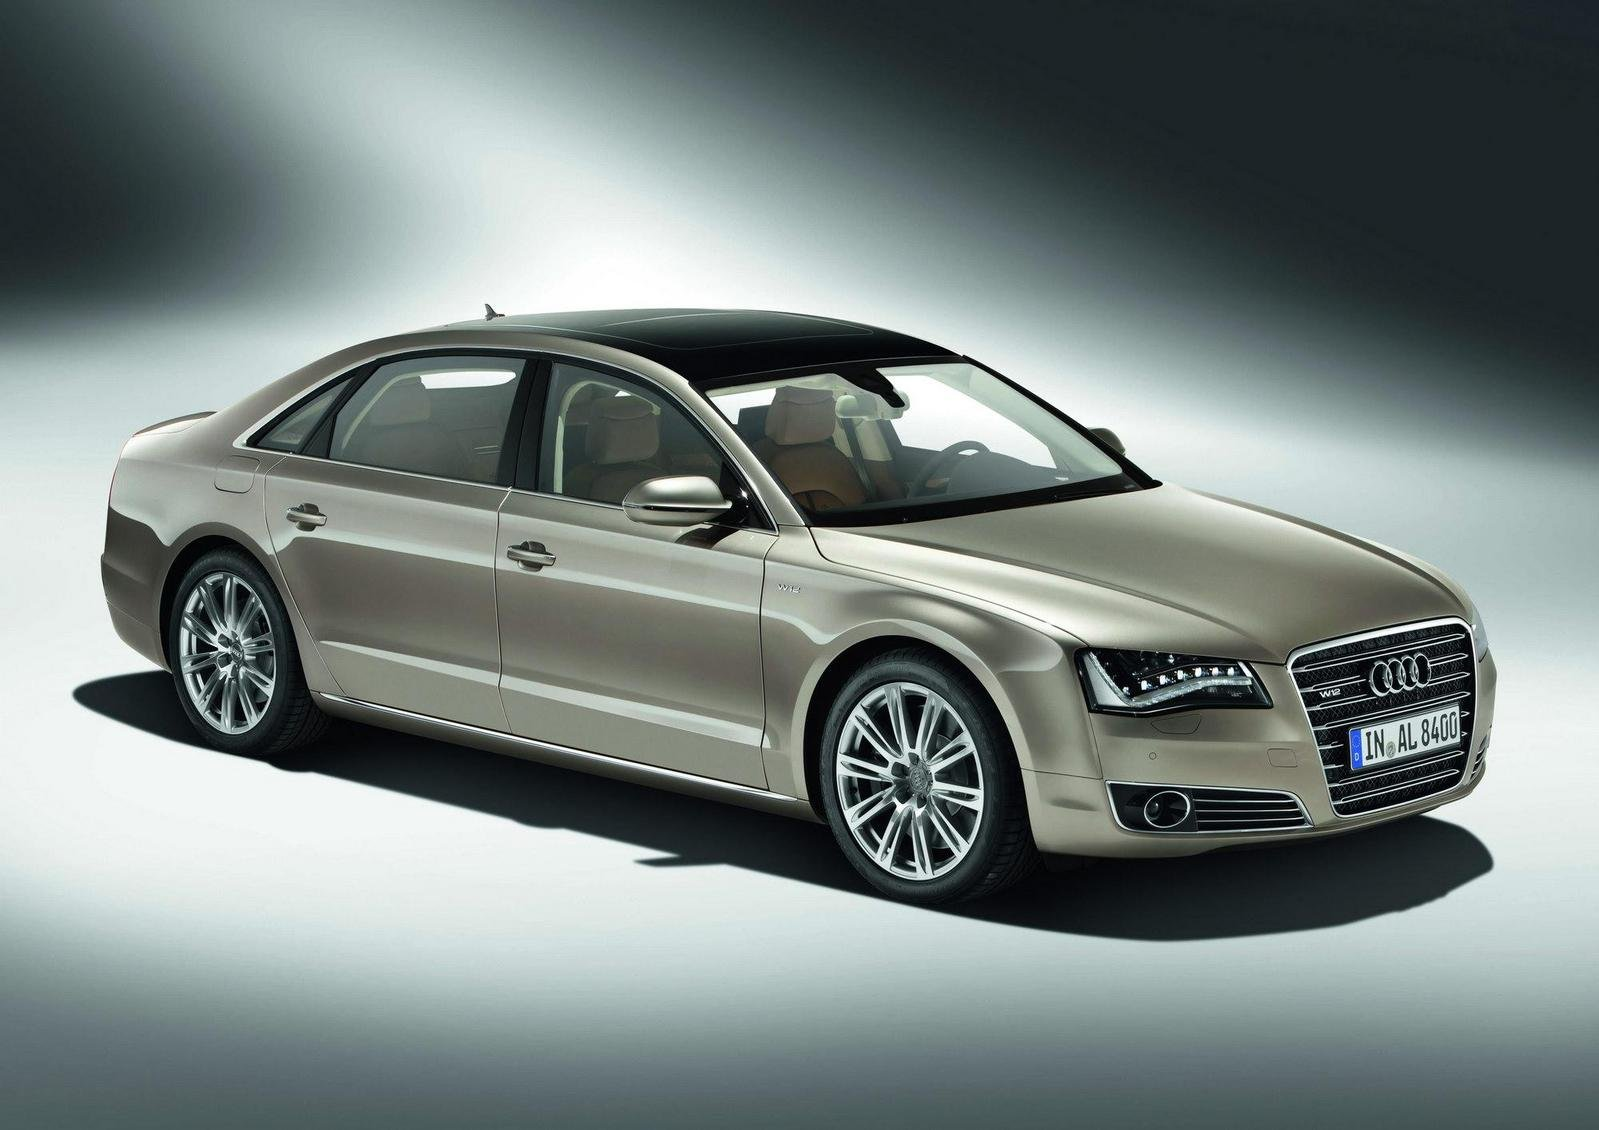 2011 audi a8 l review gallery top speed. Black Bedroom Furniture Sets. Home Design Ideas